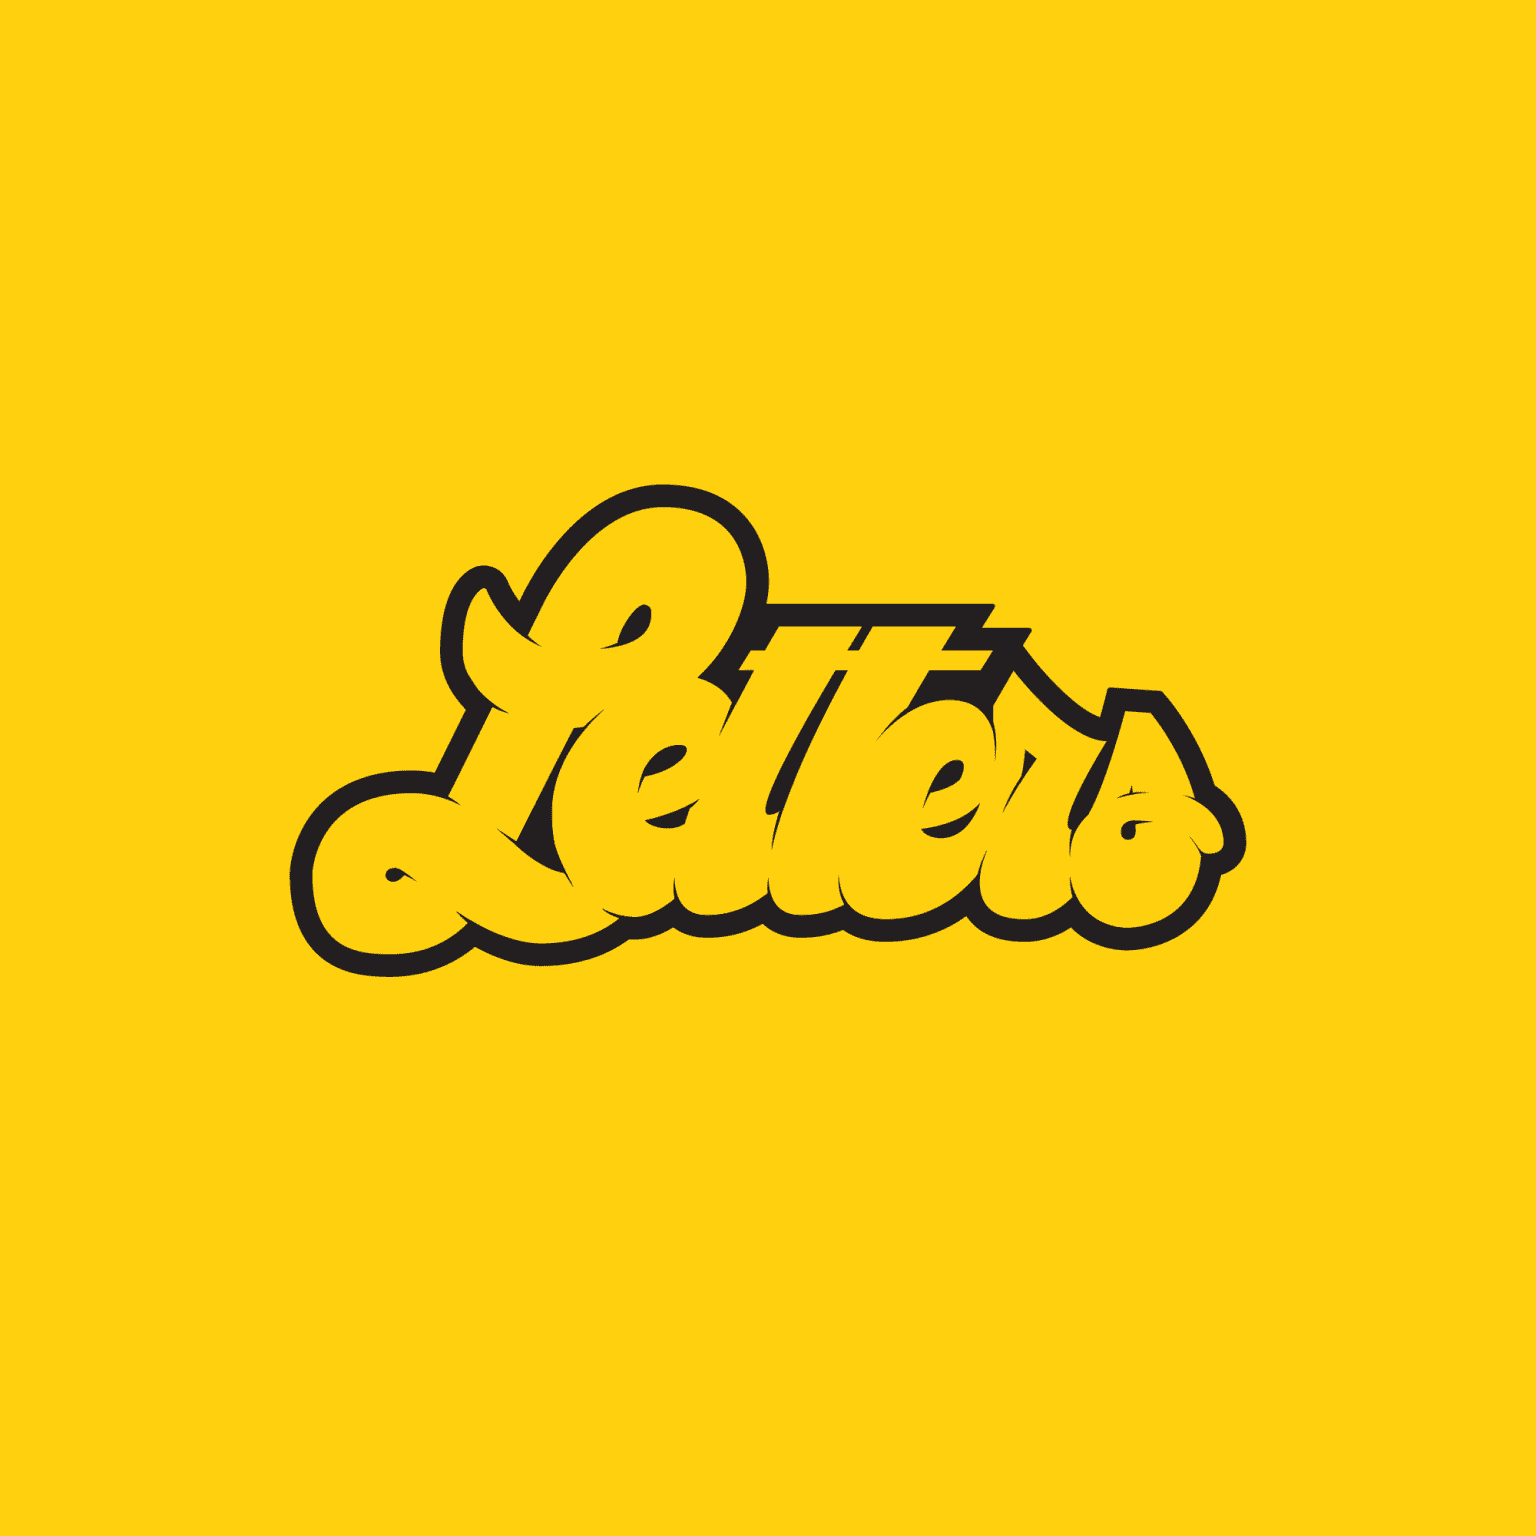 Letters Lettered